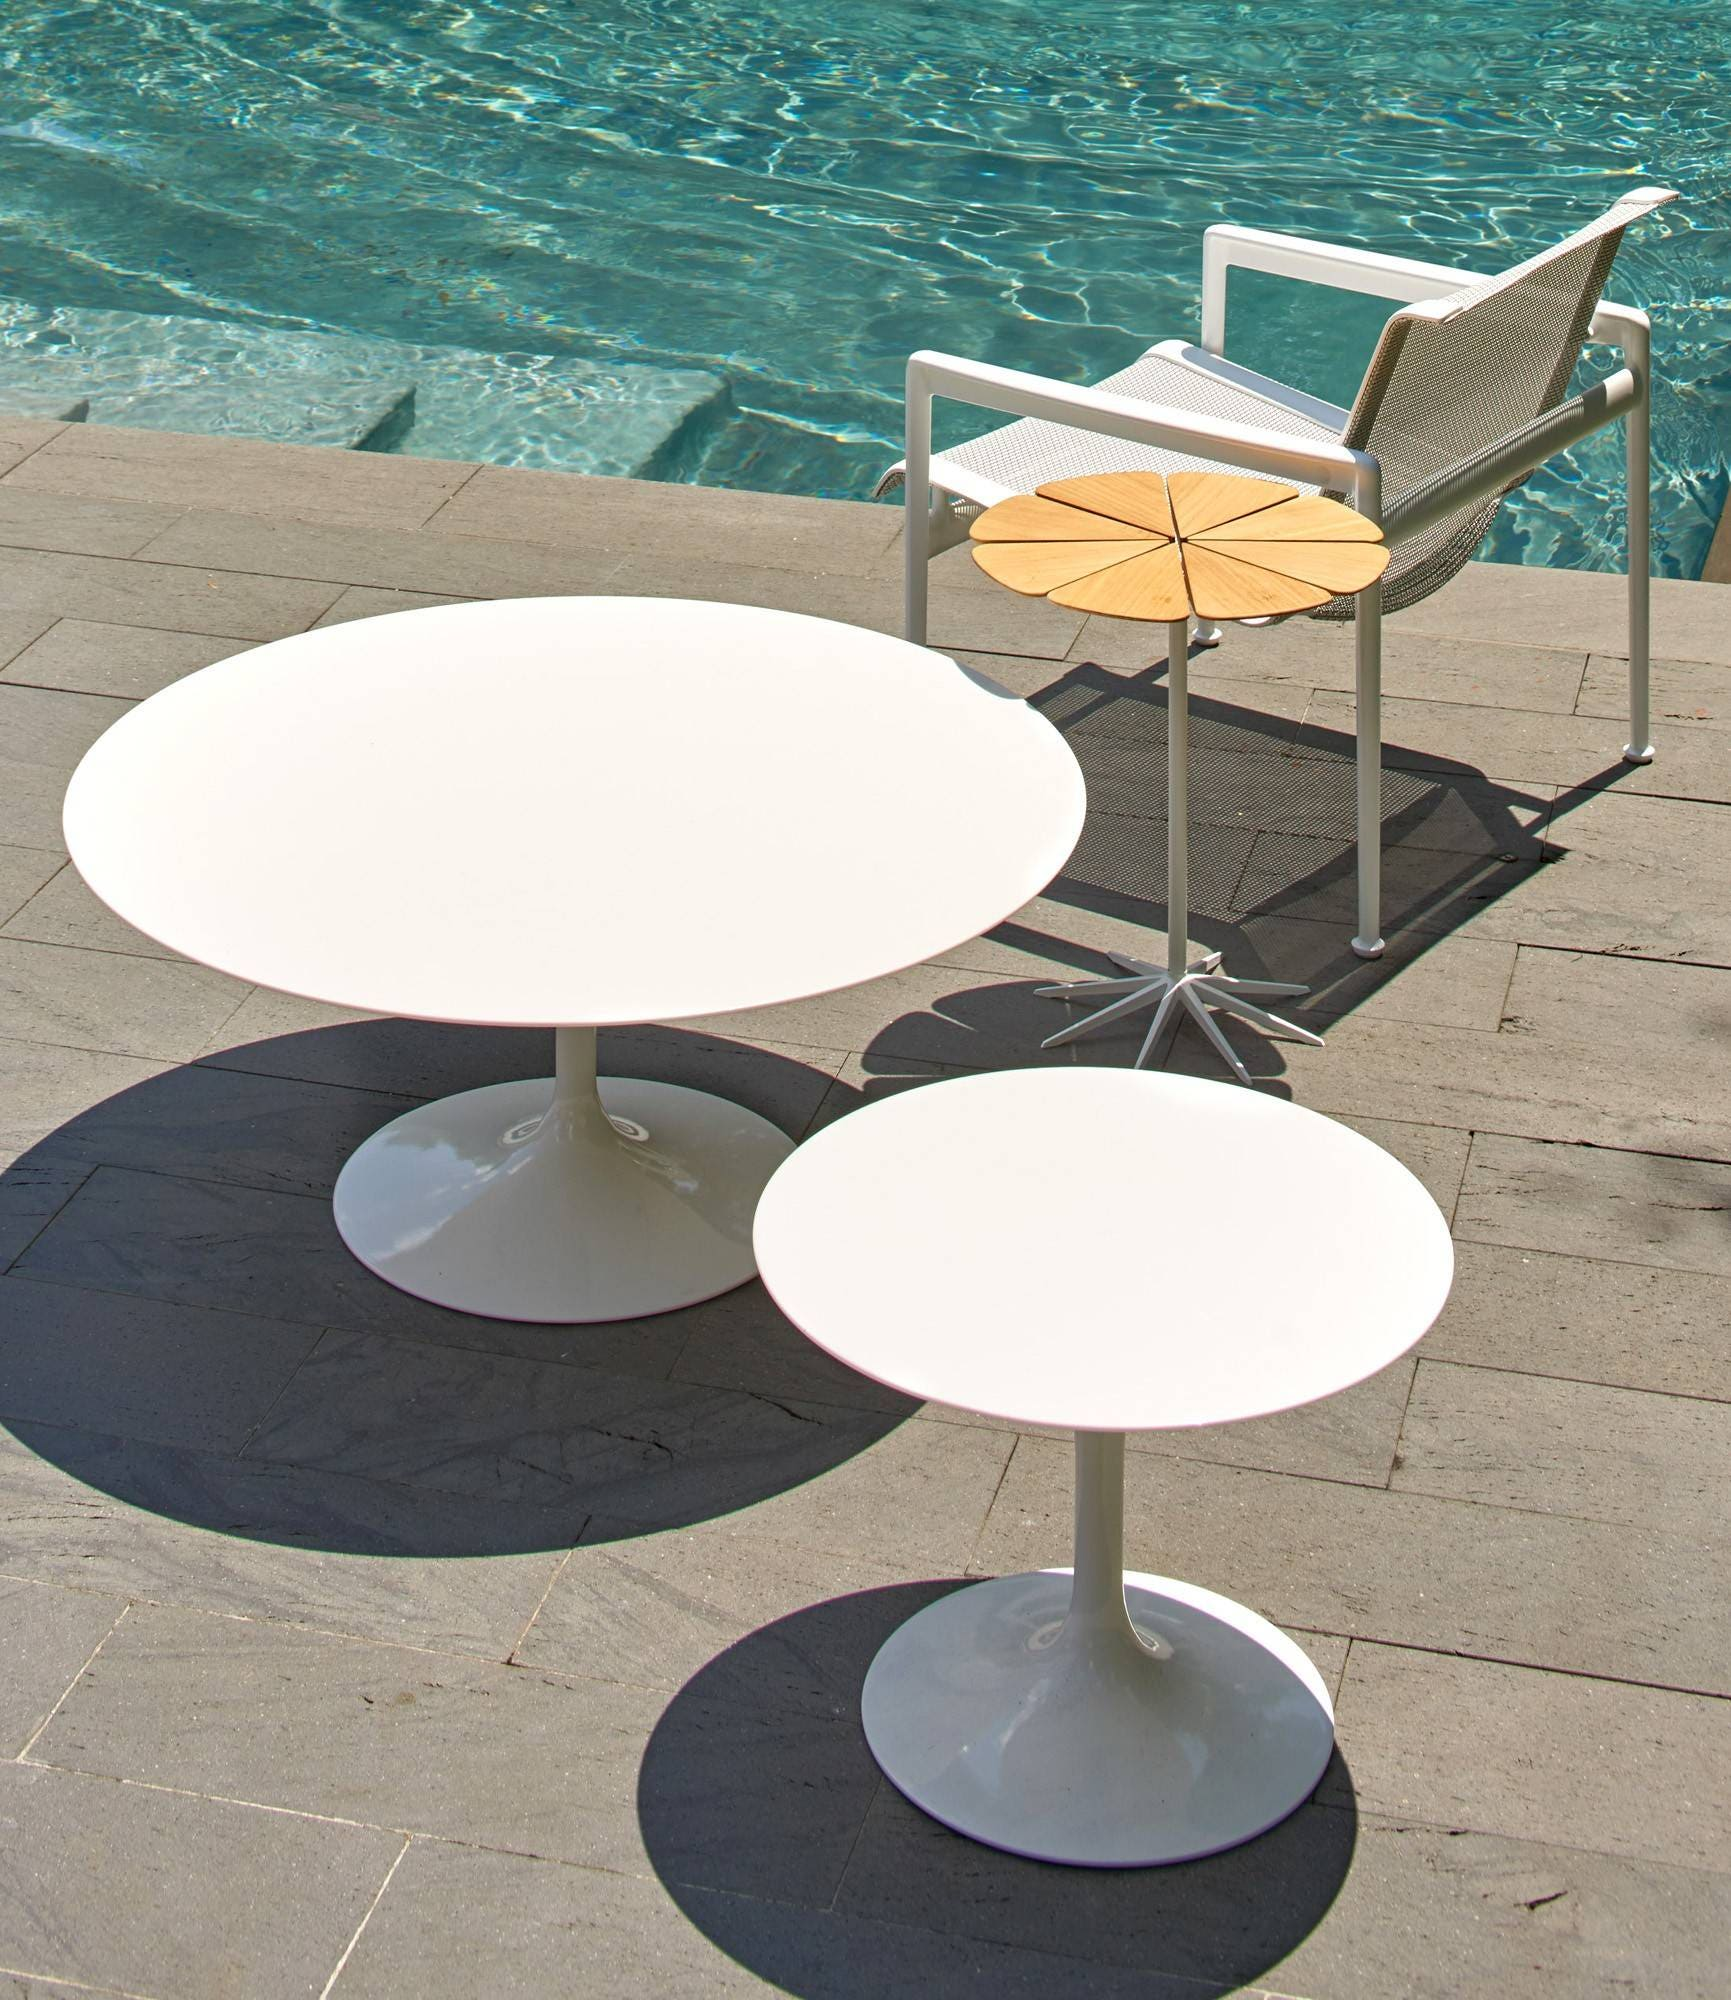 knoll saarinen round coffee table outdoor gr shop canada. Black Bedroom Furniture Sets. Home Design Ideas